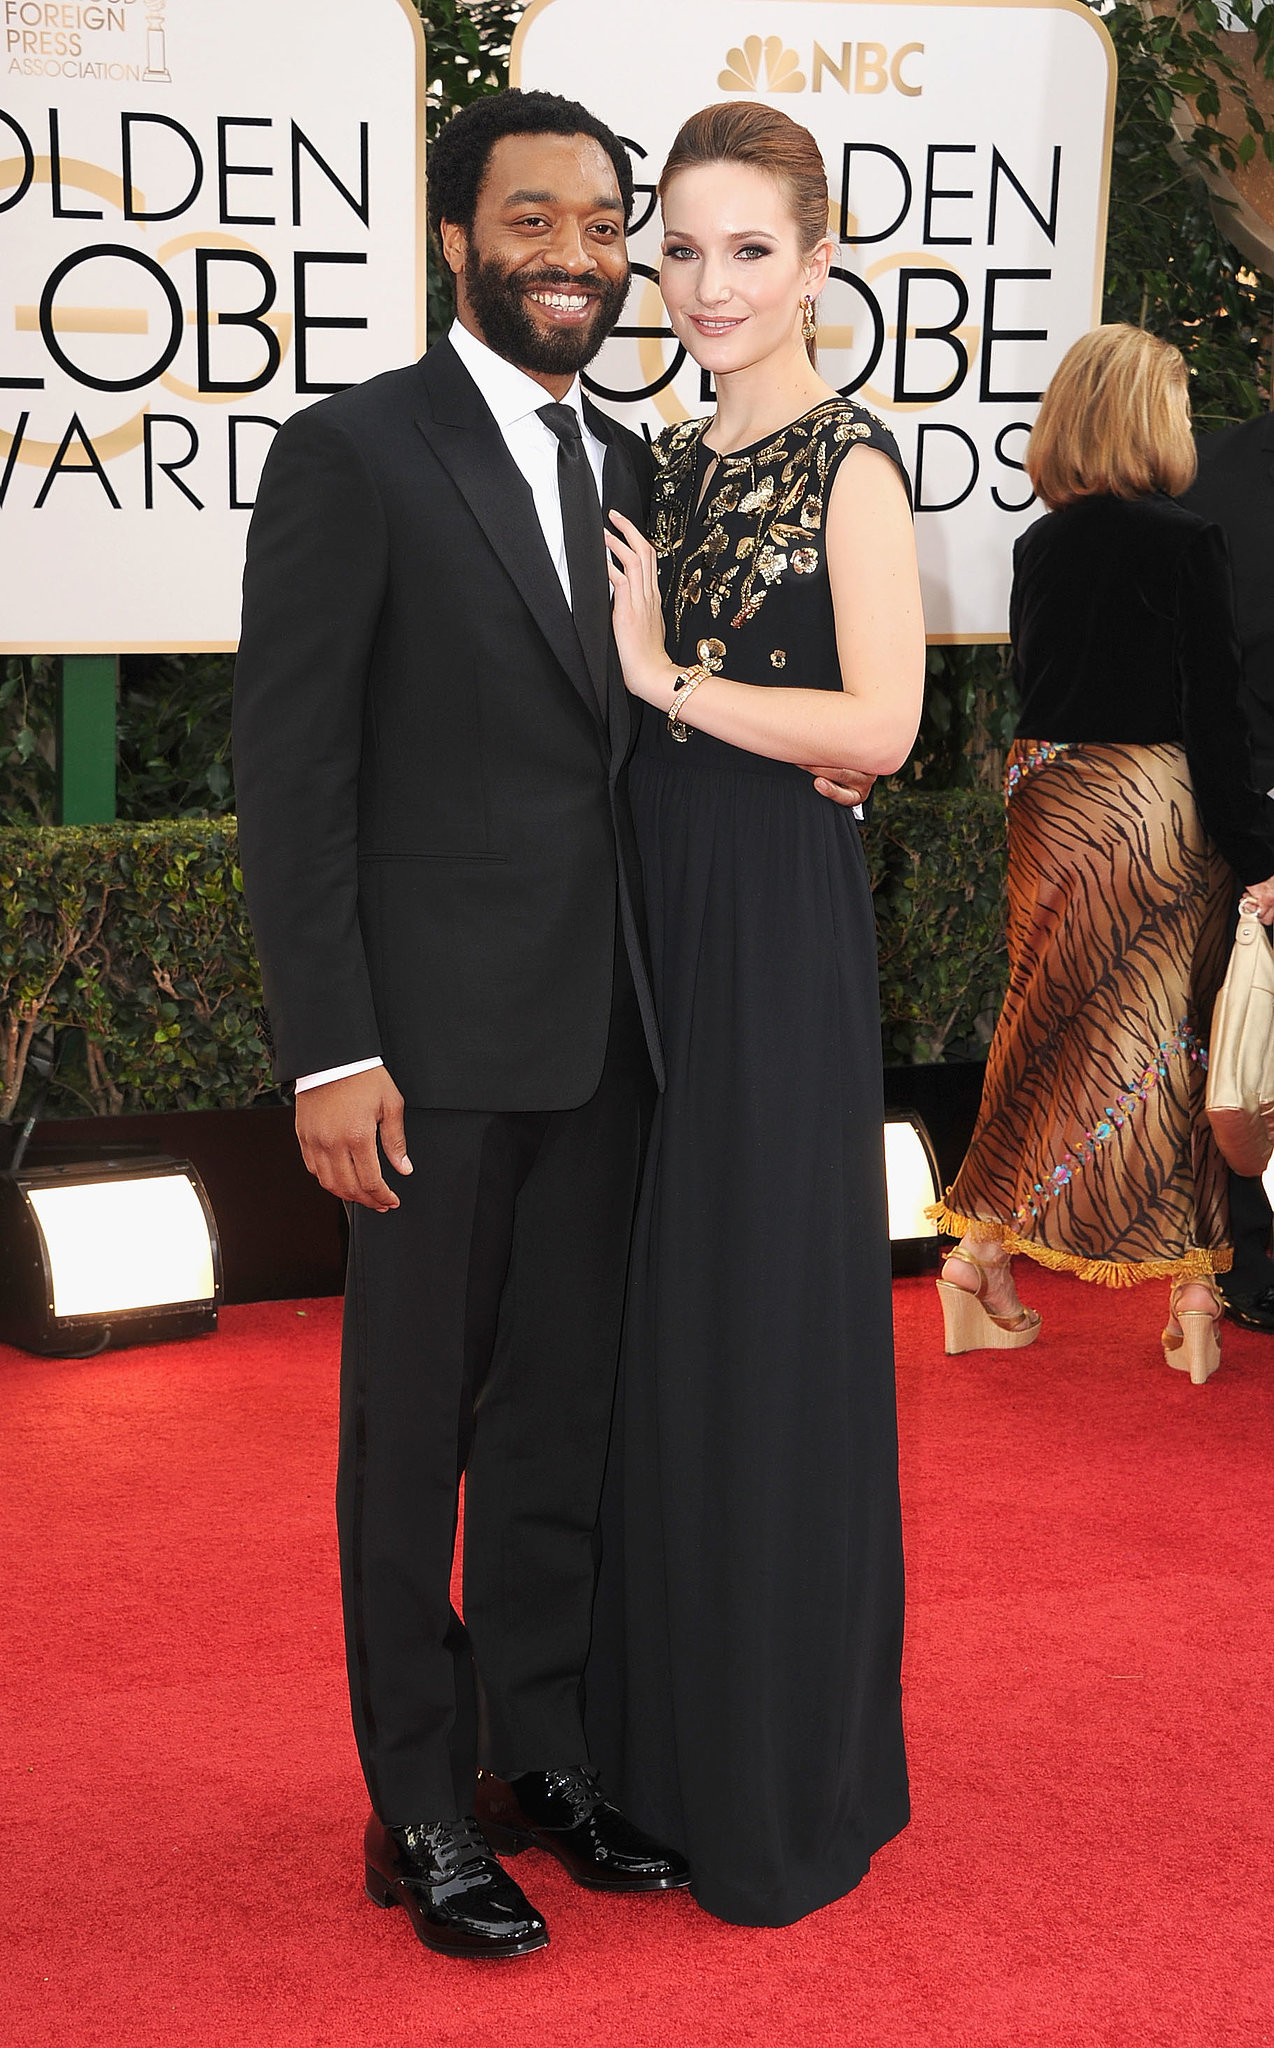 Chiwetel Ejiofor and his girlfriend, Sari Mercer, walked the red carp